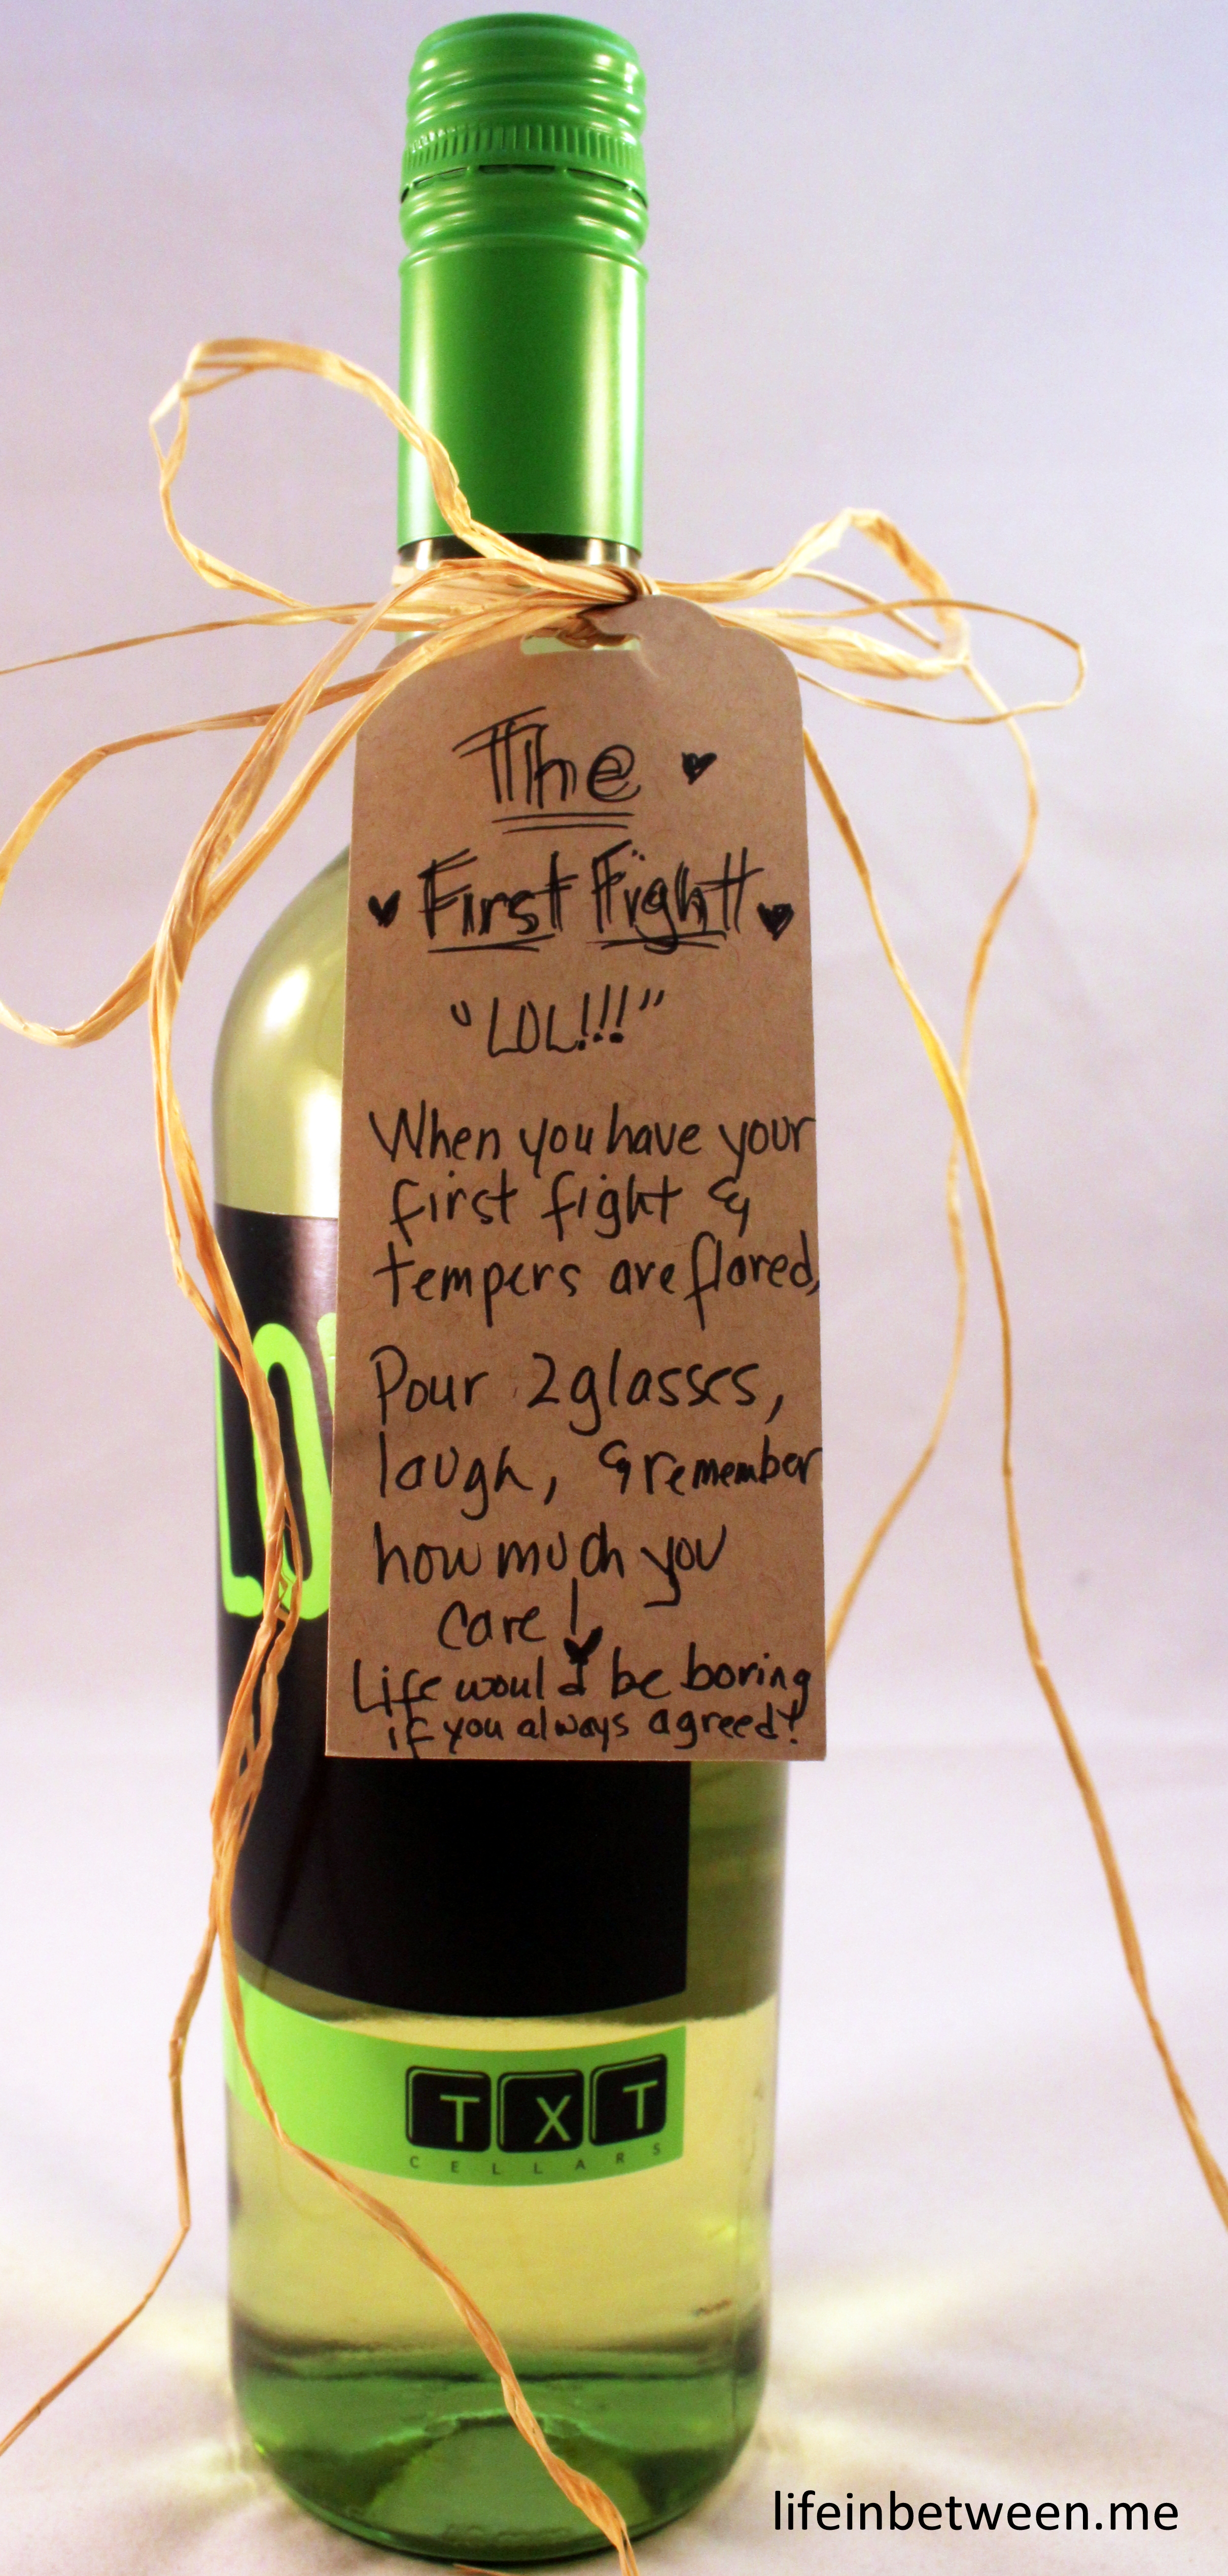 Wine Basket Firsts For Wedding Gift : Creative Inspiration in Food, Watercolor, Photography, Writing and ...